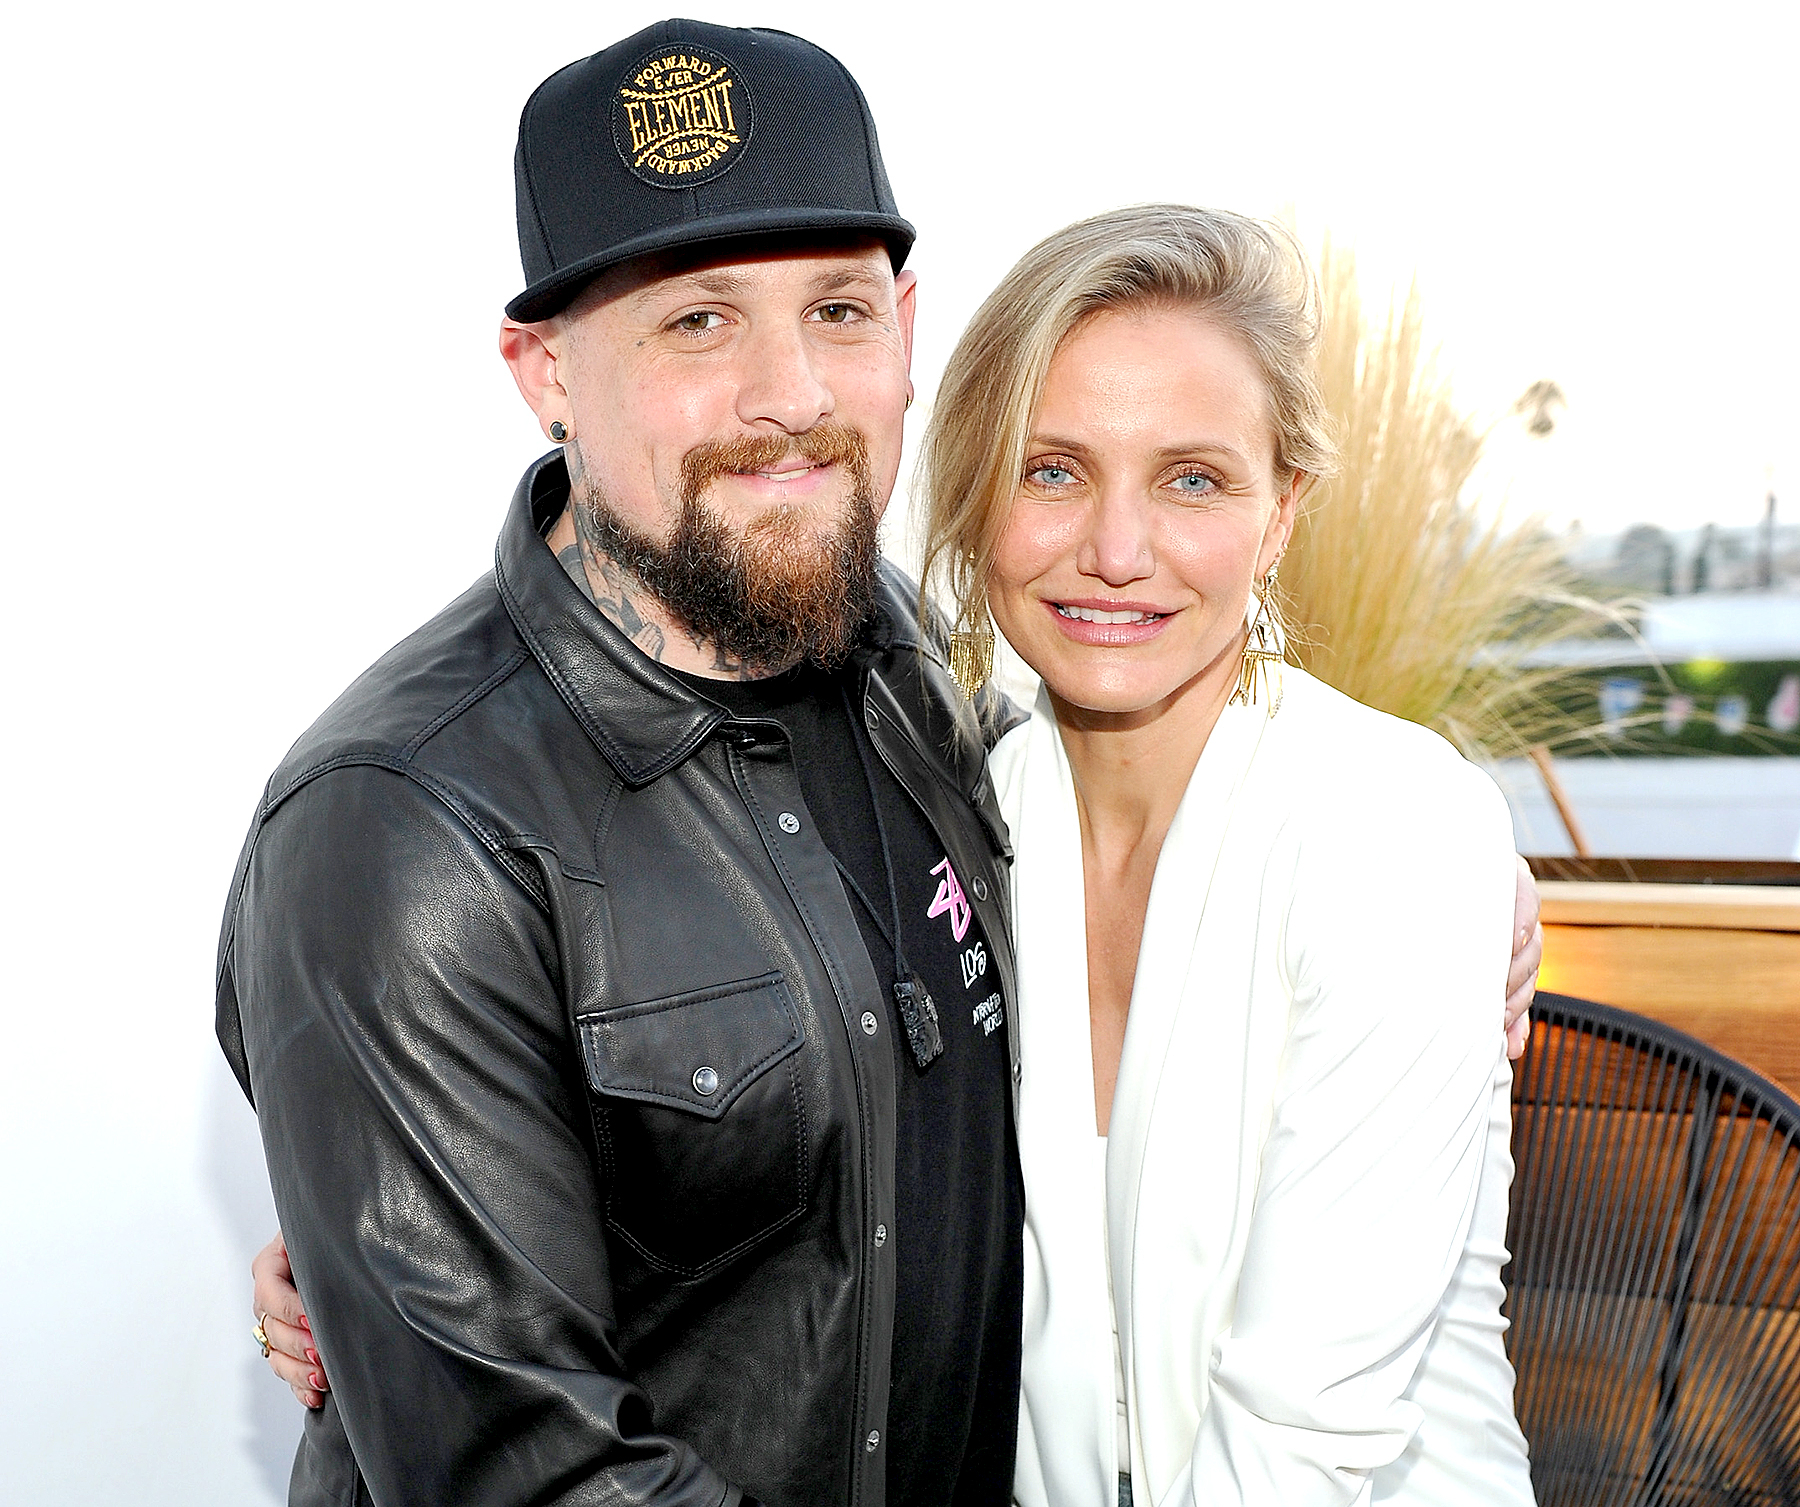 Benji Madden and Cameron Diaz attend House of Harlow 1960 x REVOLVE on June 2, 2016 in Los Angeles, California.